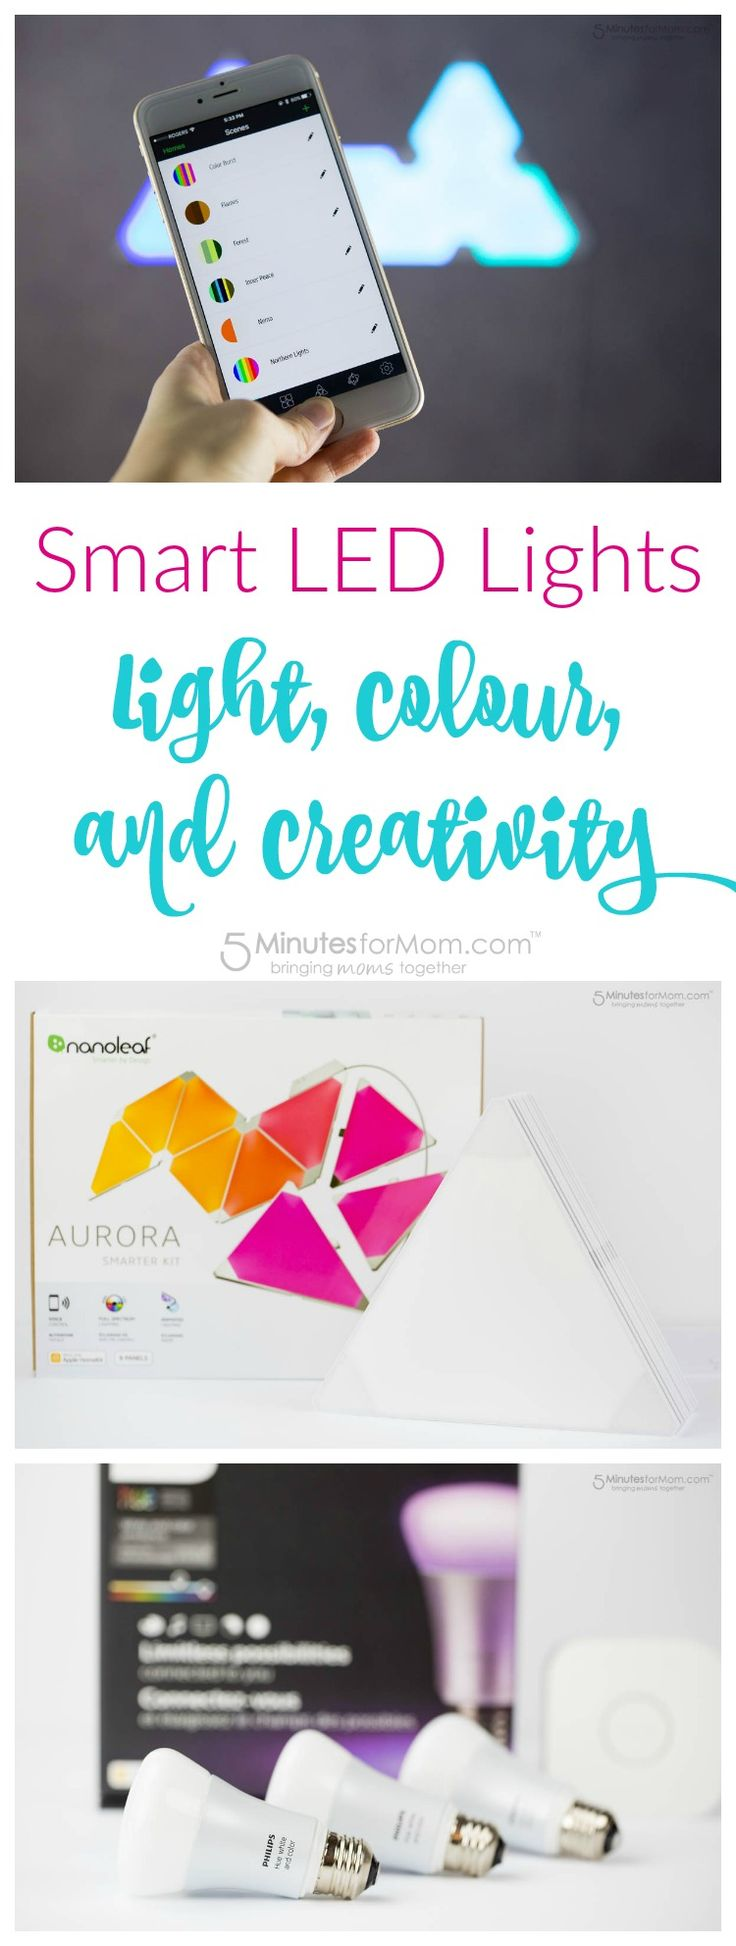 best products i love images on pinterest crafts creativity